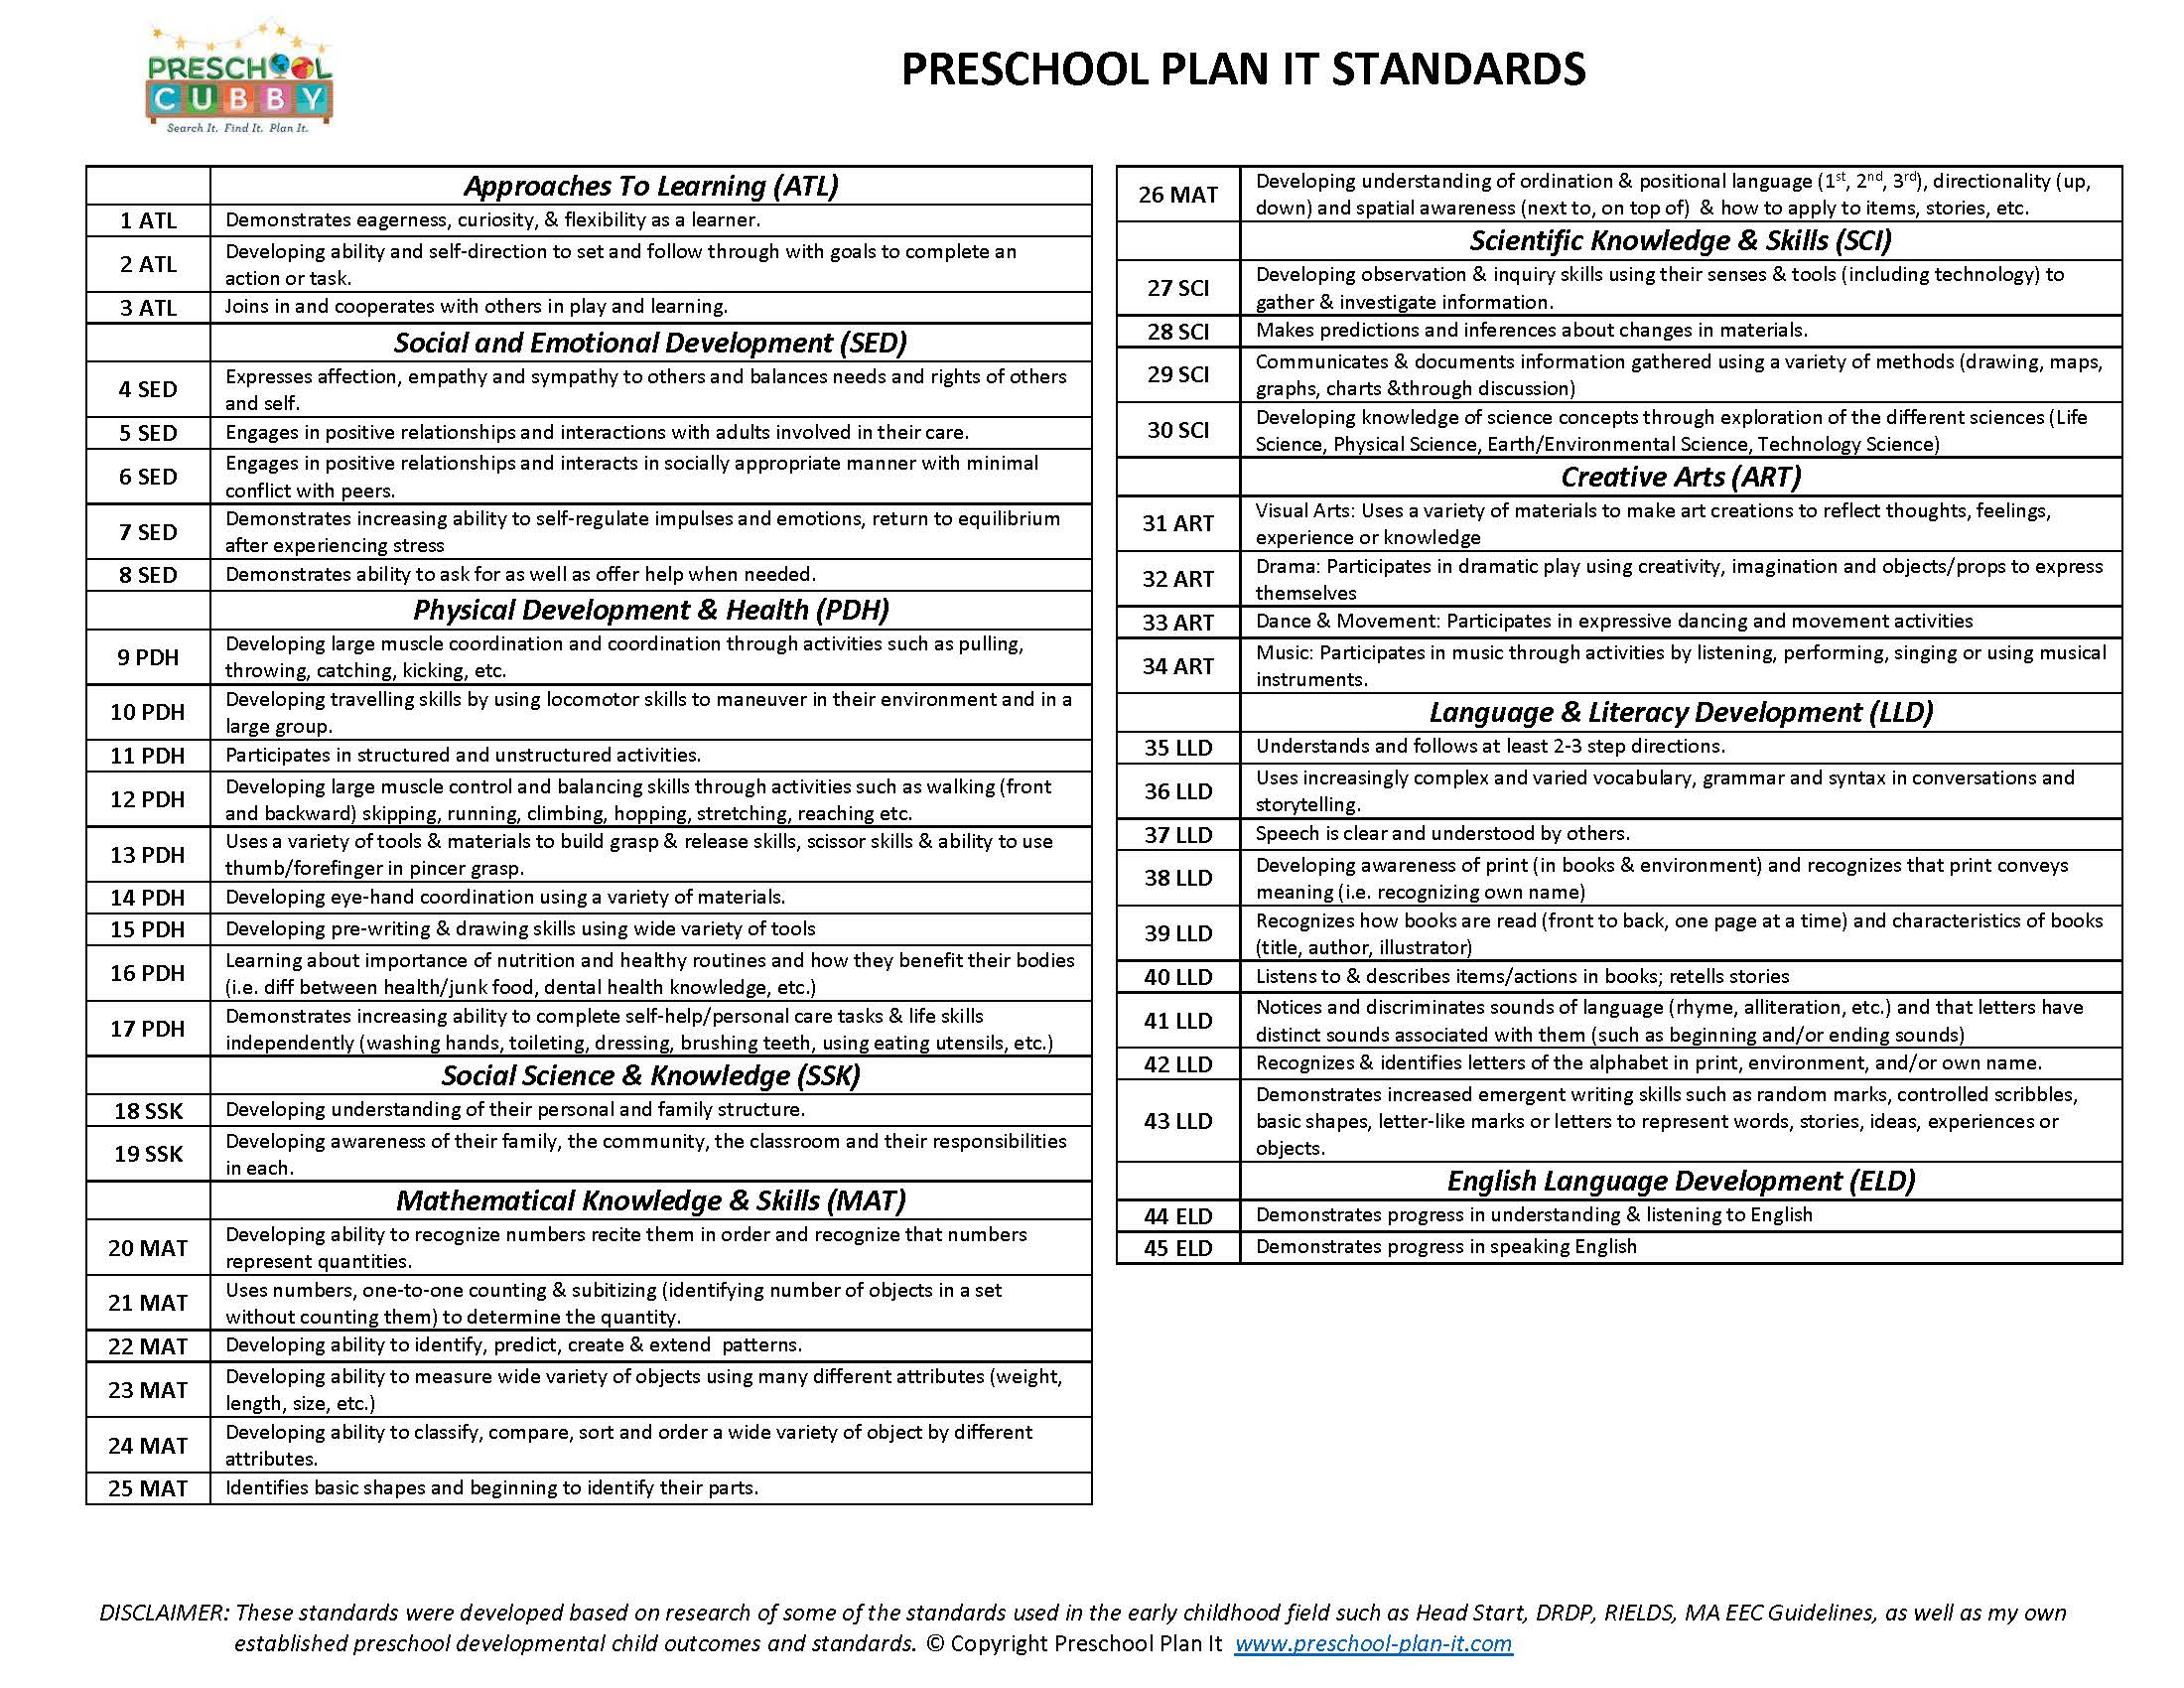 Preschool Plan It Teacher Club